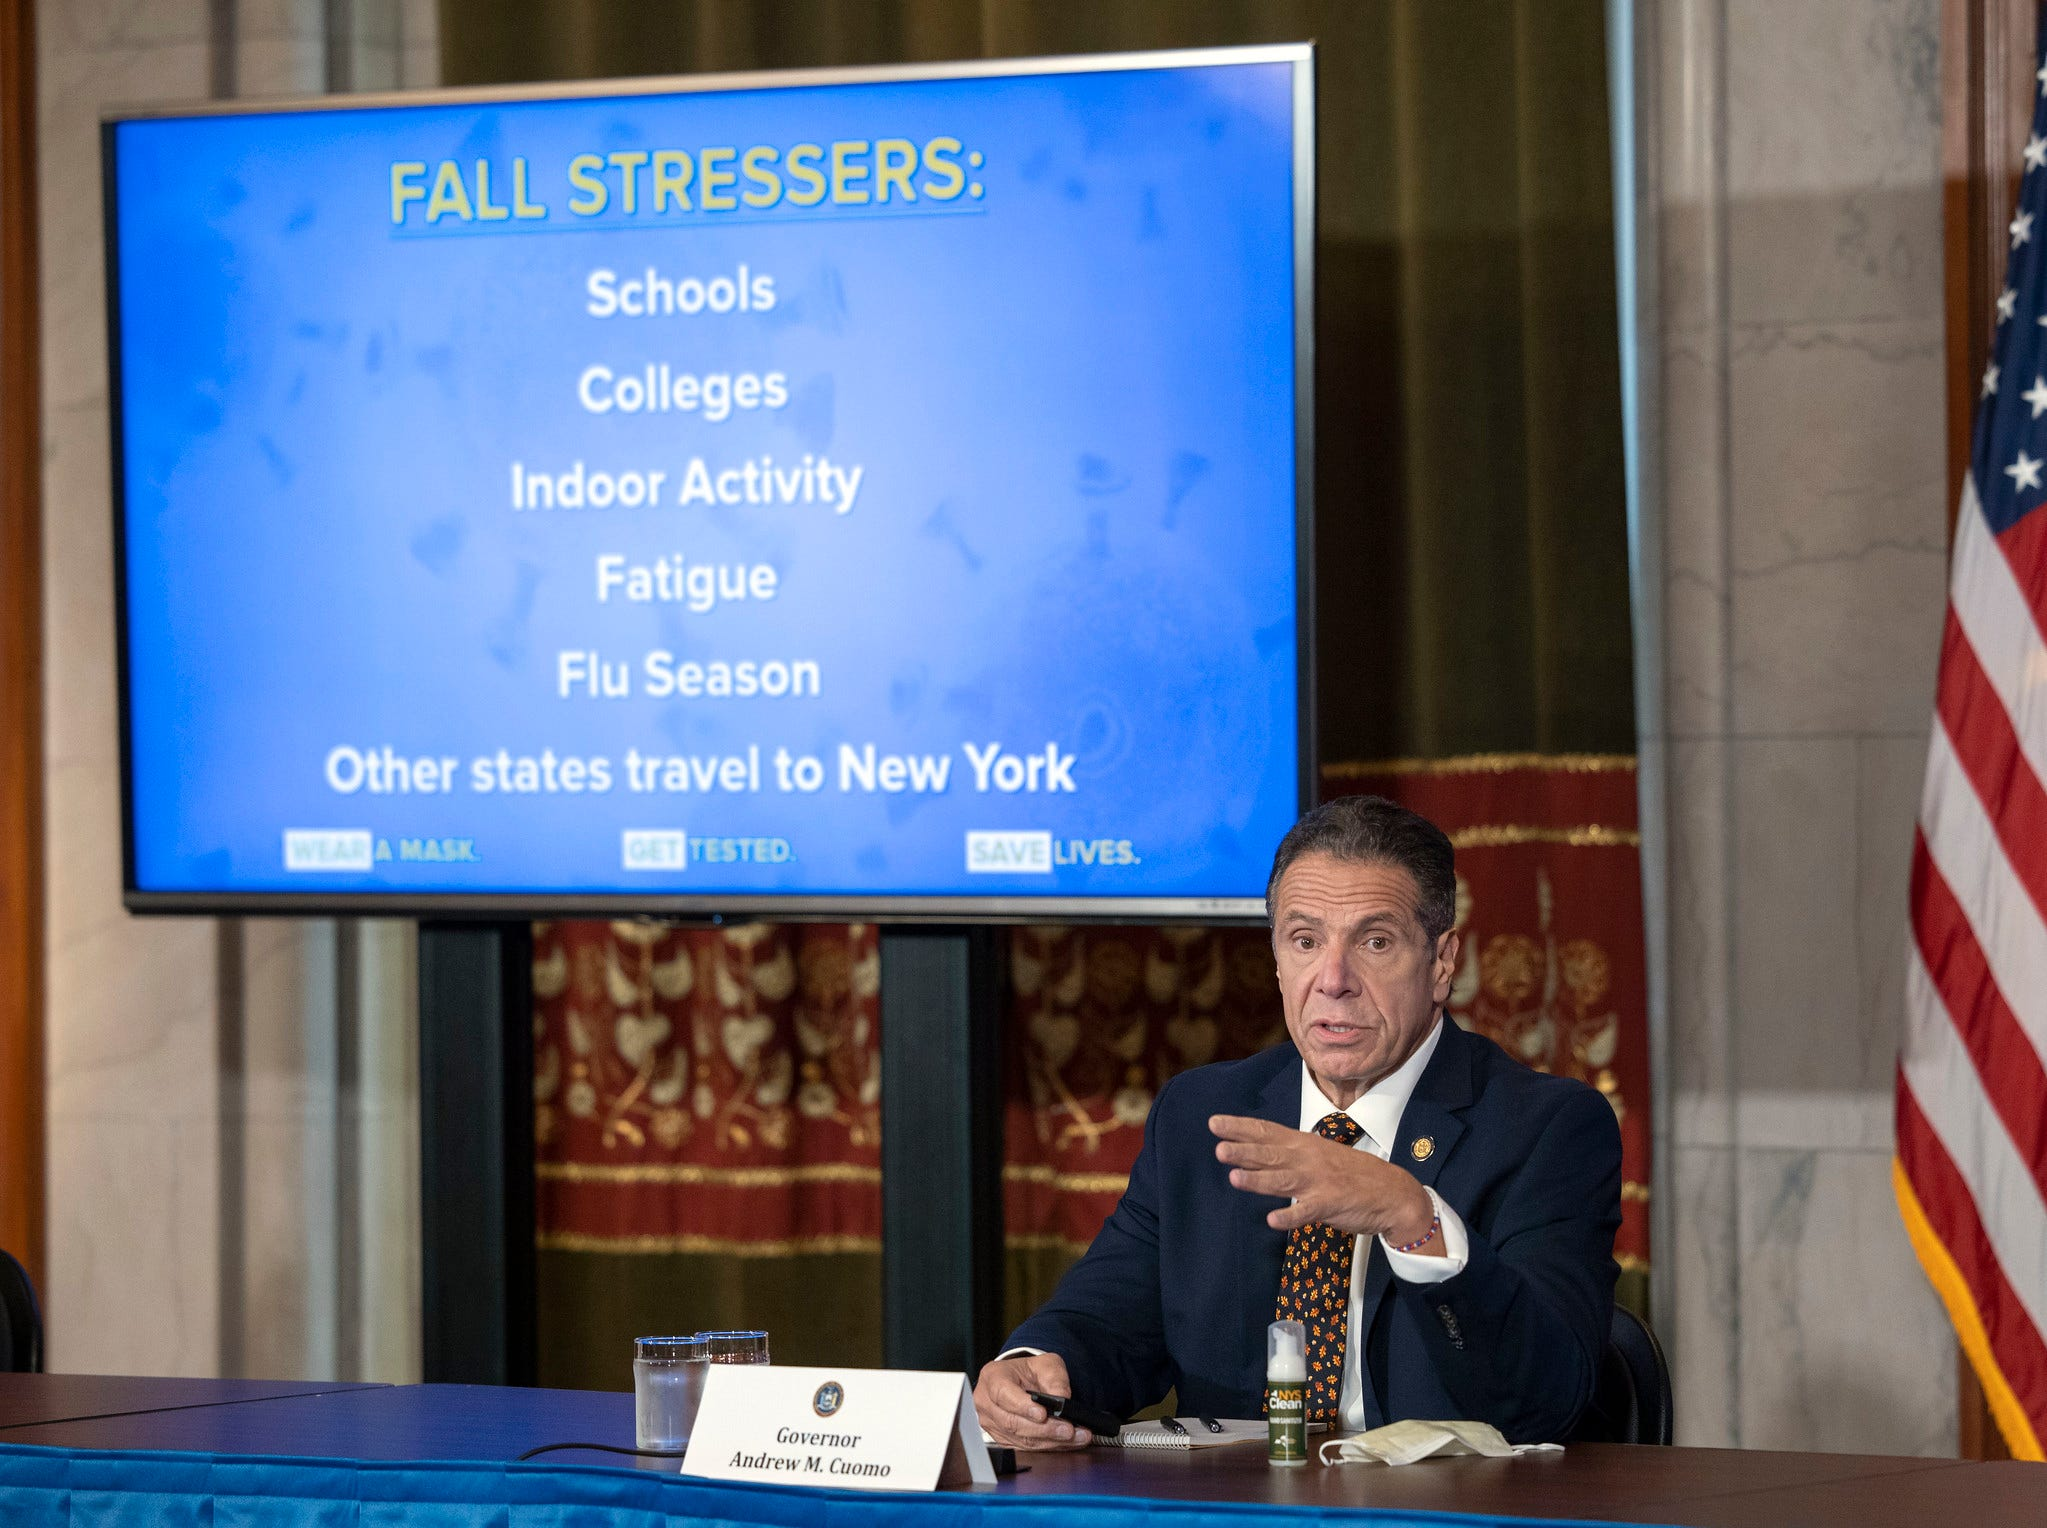 NY state reports 2,061 new COVID cases, 1,045 hospitalizations